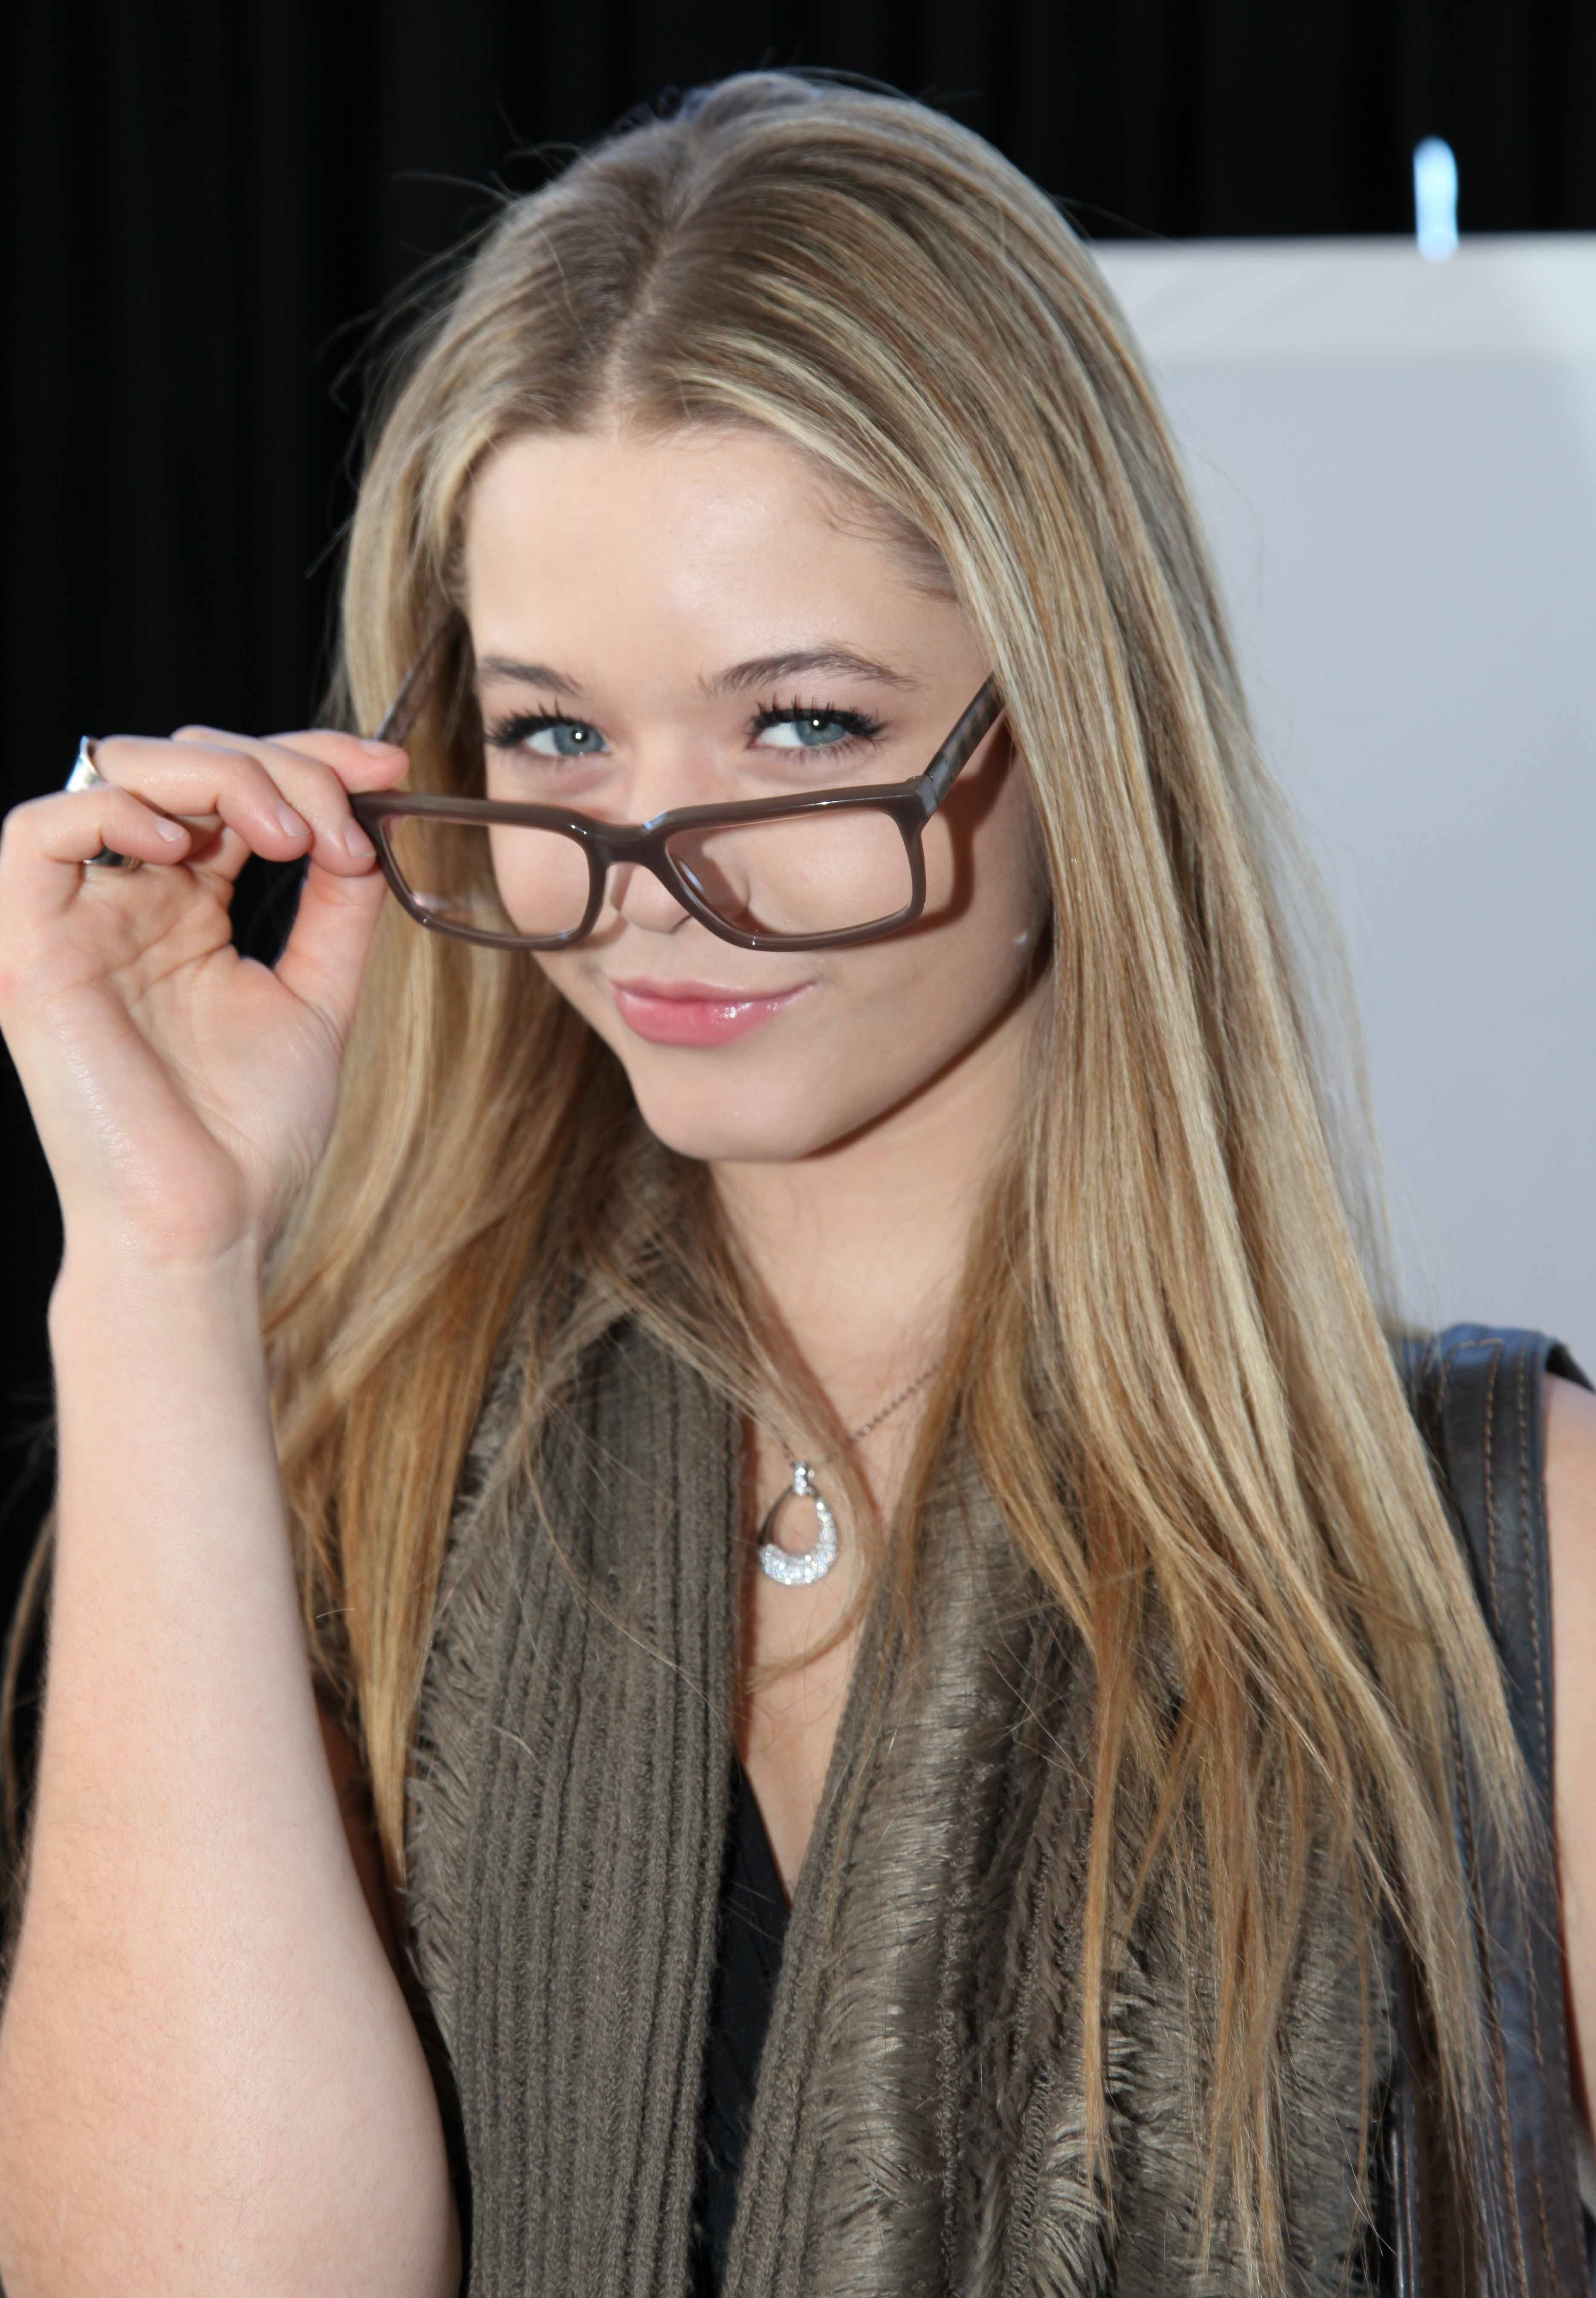 Spotted sasha pieterse wearing crizal no glare lenses at the golden spotted sasha pieterse wearing crizal no glare lenses at the golden globes 2012 gbk gift lounge thecheapjerseys Images